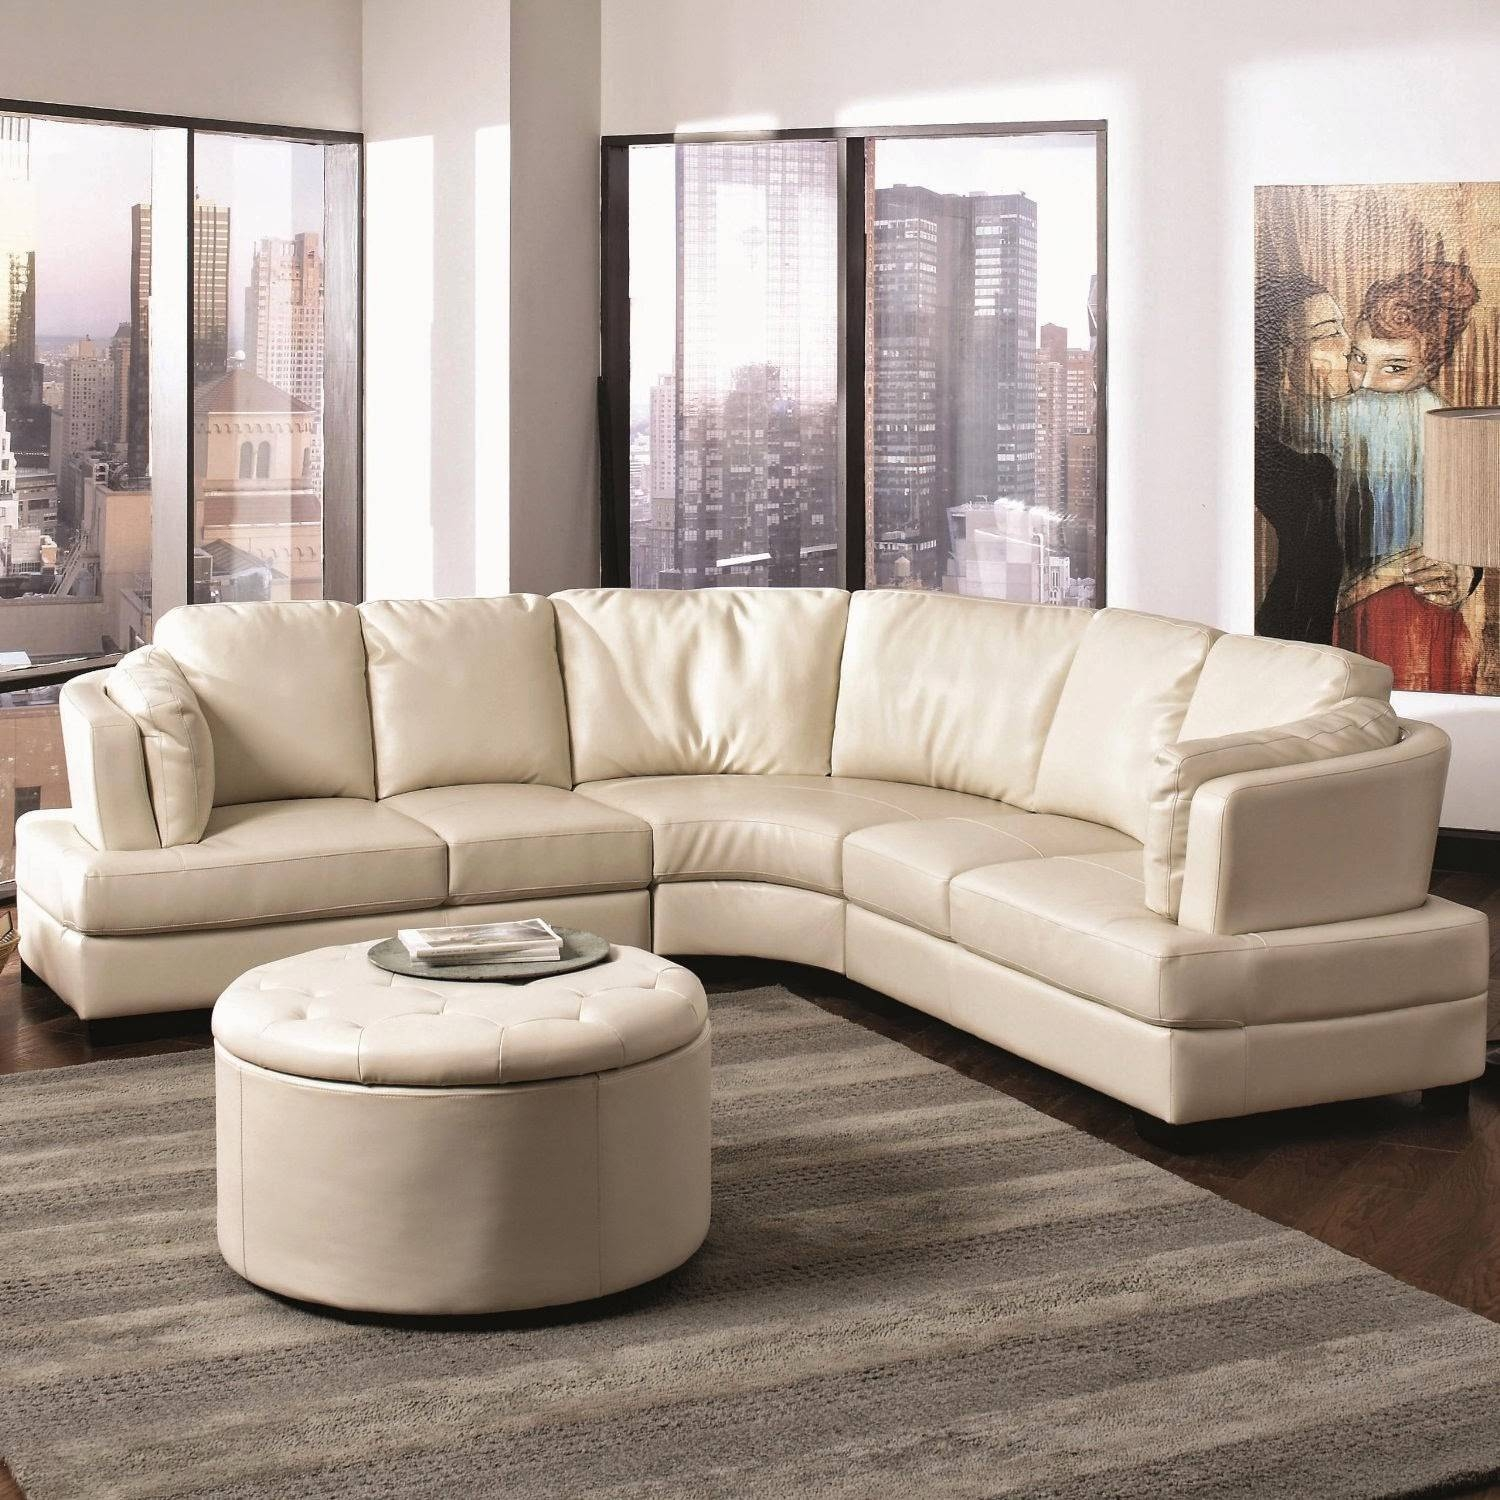 Furniture: Appealing Curved Sectional Sofa For Furniture In Your In Circular Sectional Sofa (View 12 of 30)